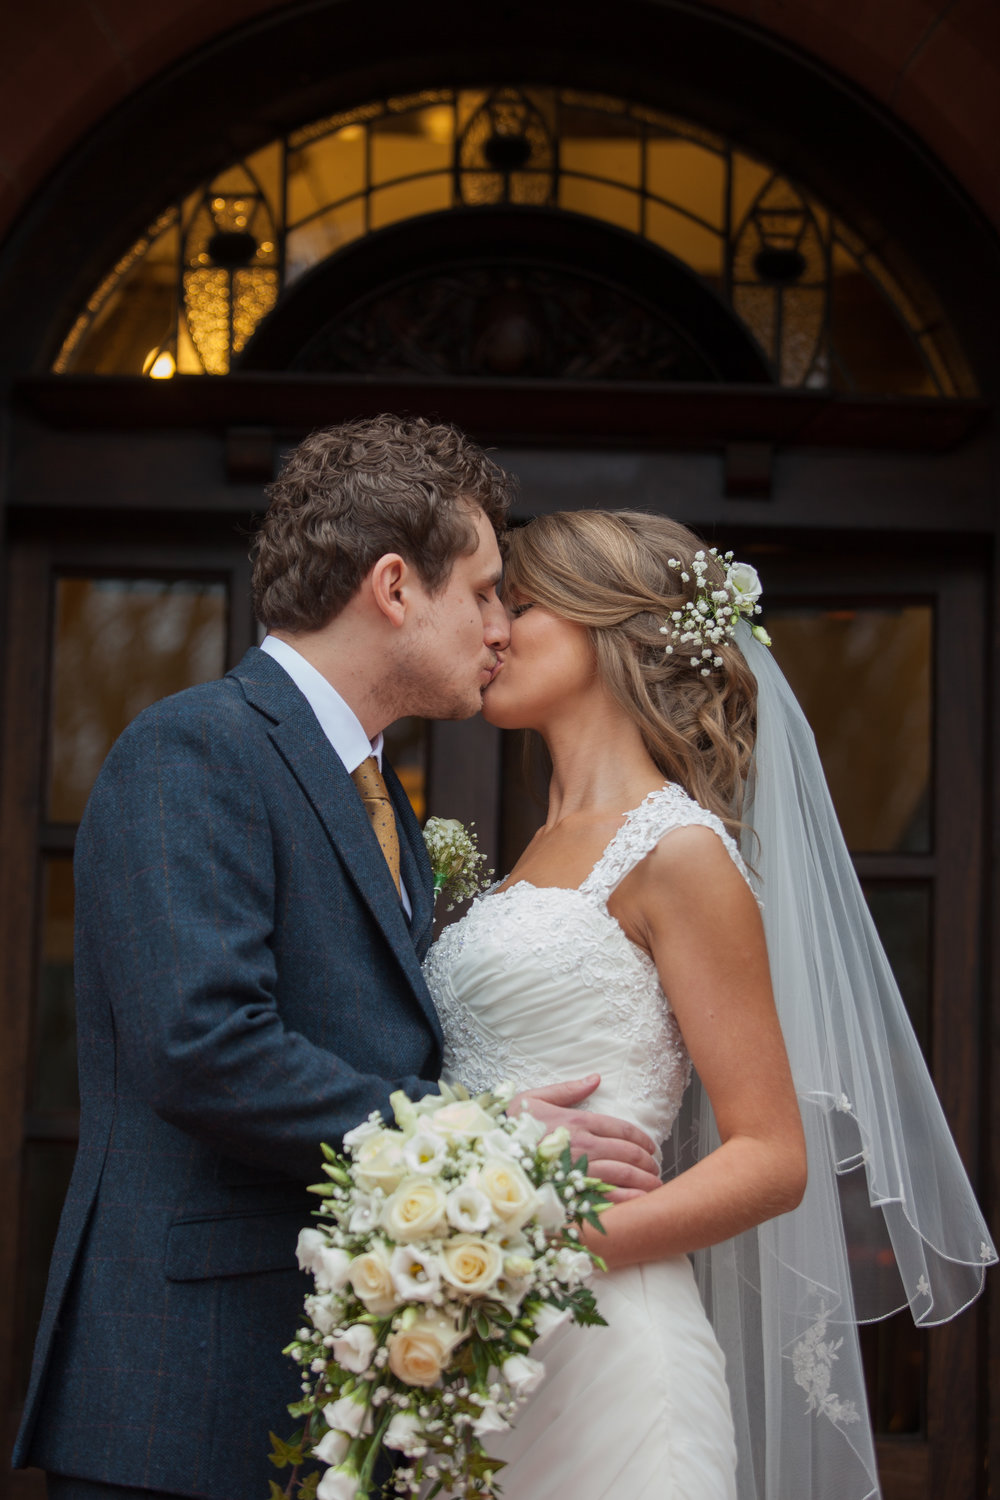 First Kiss, image by Doran Photography